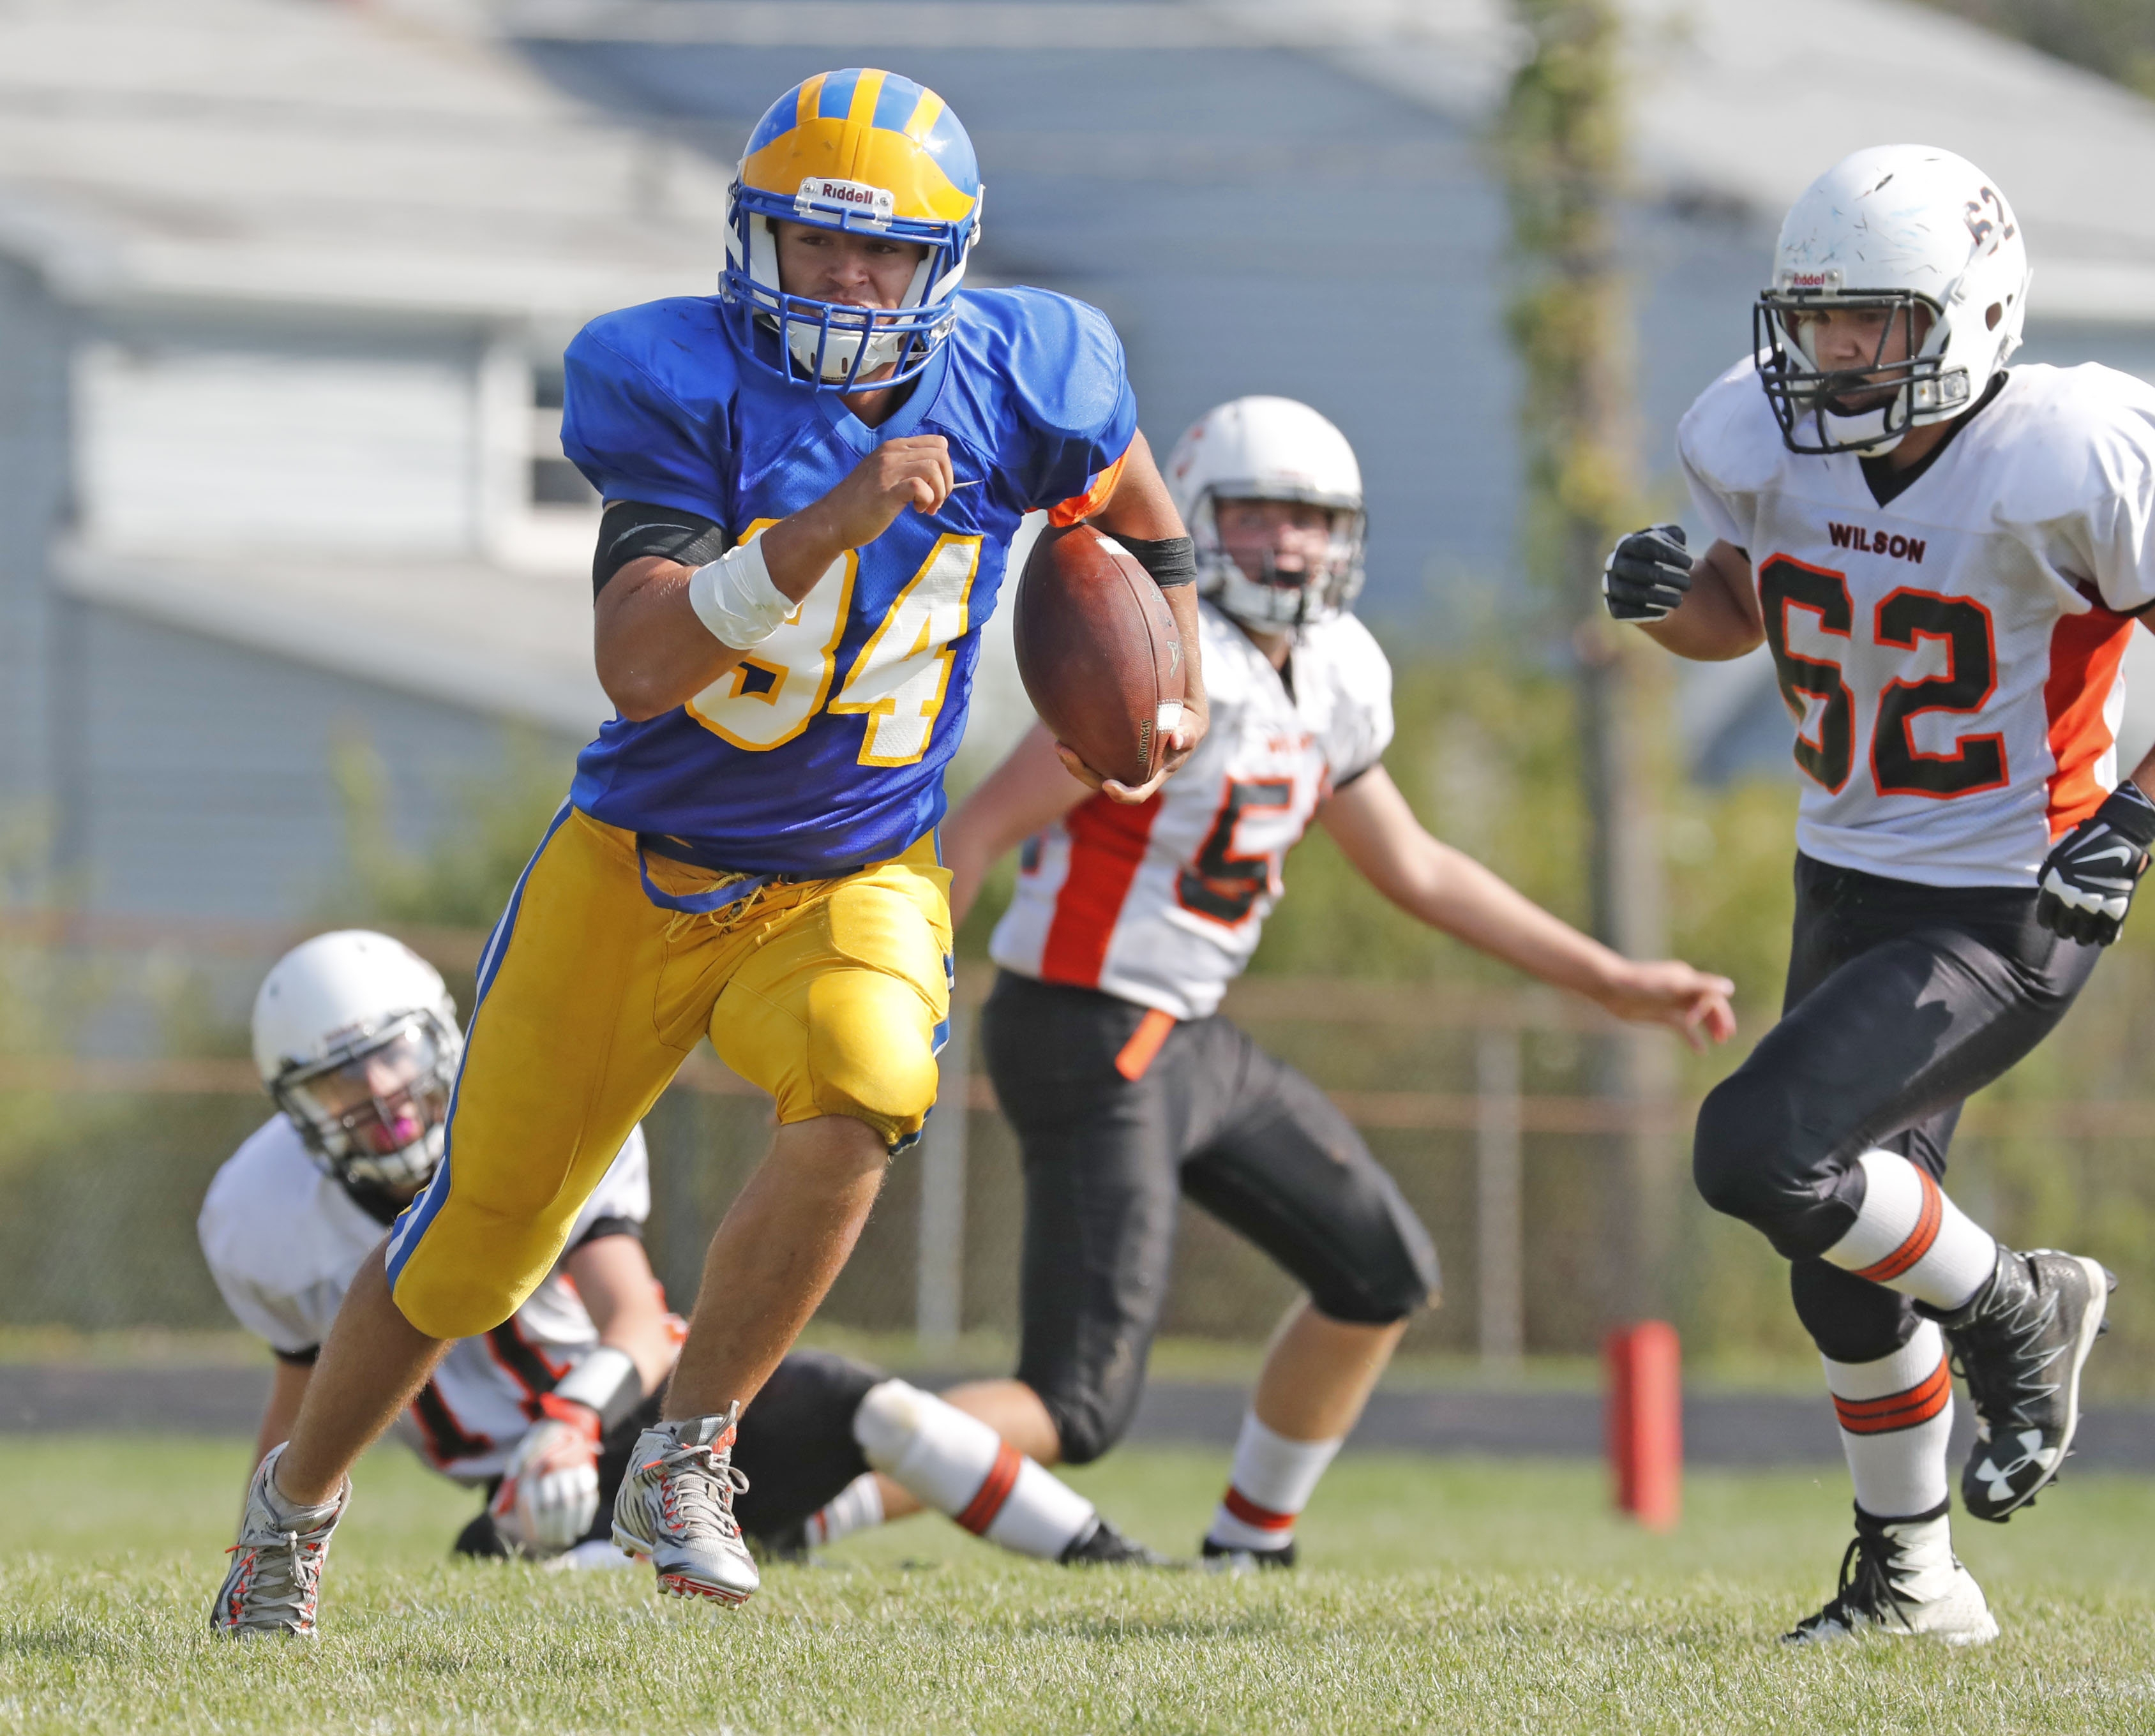 Cleveland Hill's Ryan Majerowski runs for a second half touchdown against Wilson during Saturday's game in Cheektowaga.